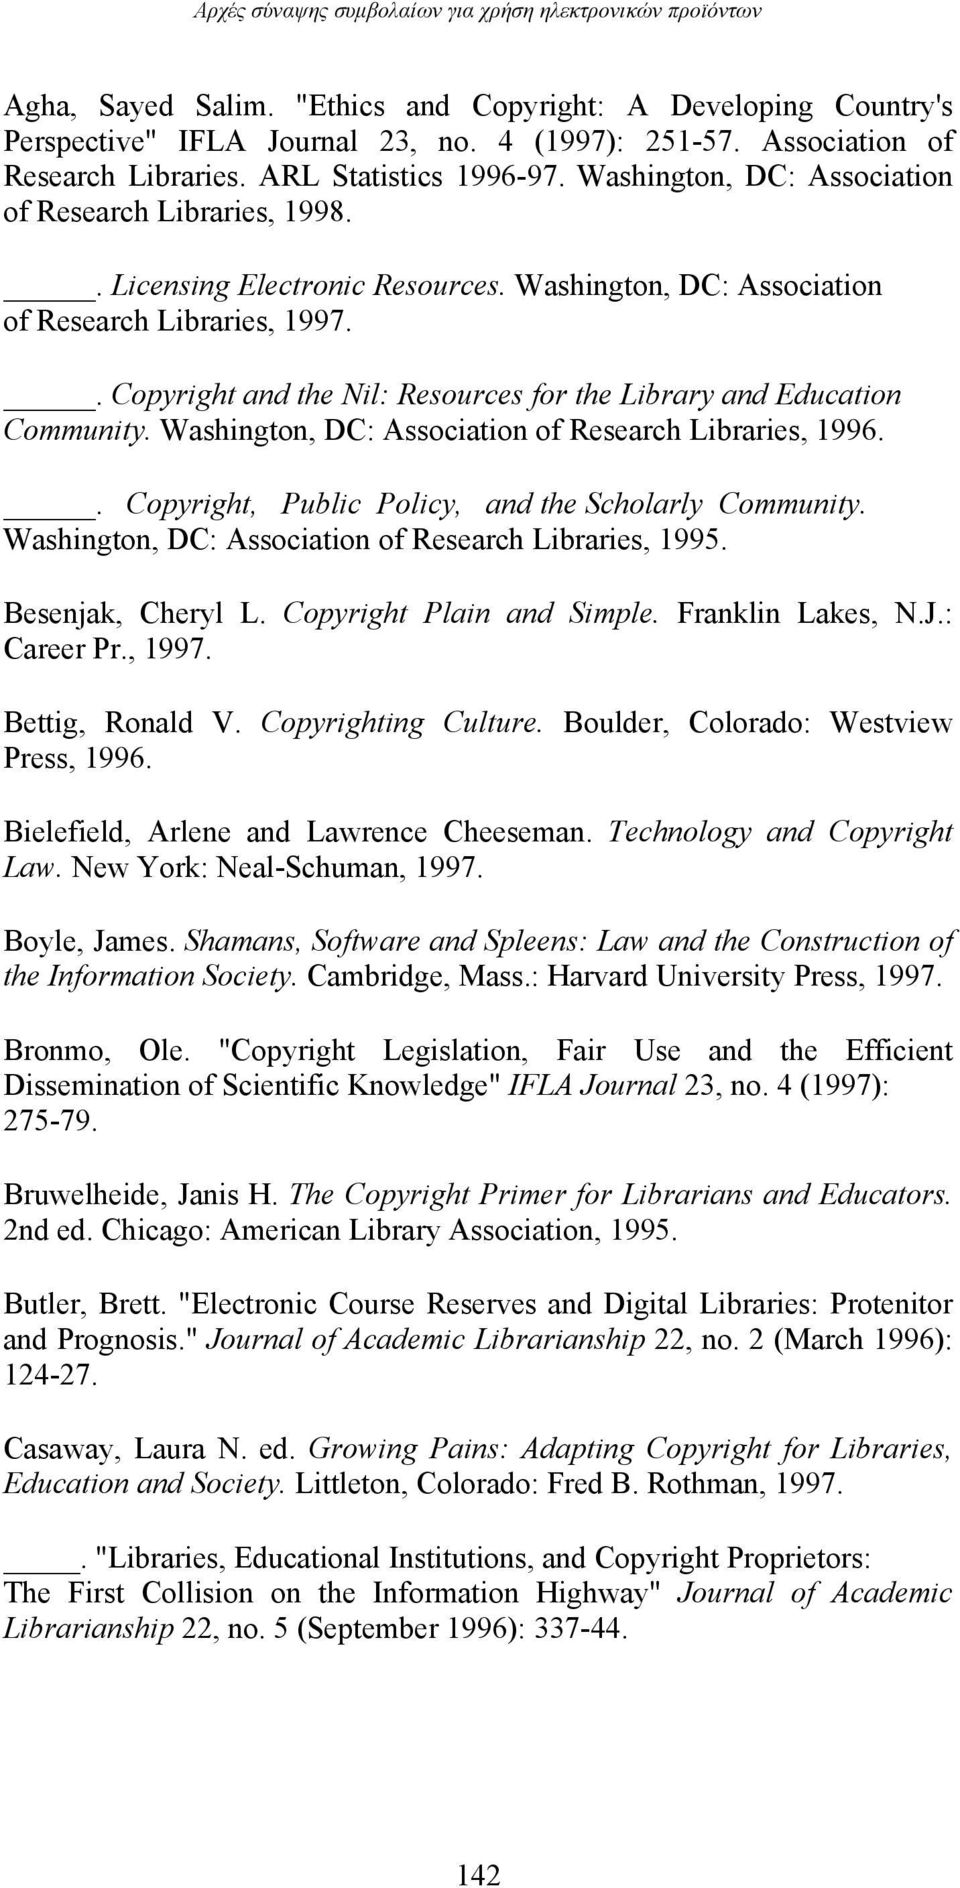 Washington, DC: Association of Research Libraries, 1997.. Copyright and the Nil: Resources for the Library and Education Community. Washington, DC: Association of Research Libraries, 1996.